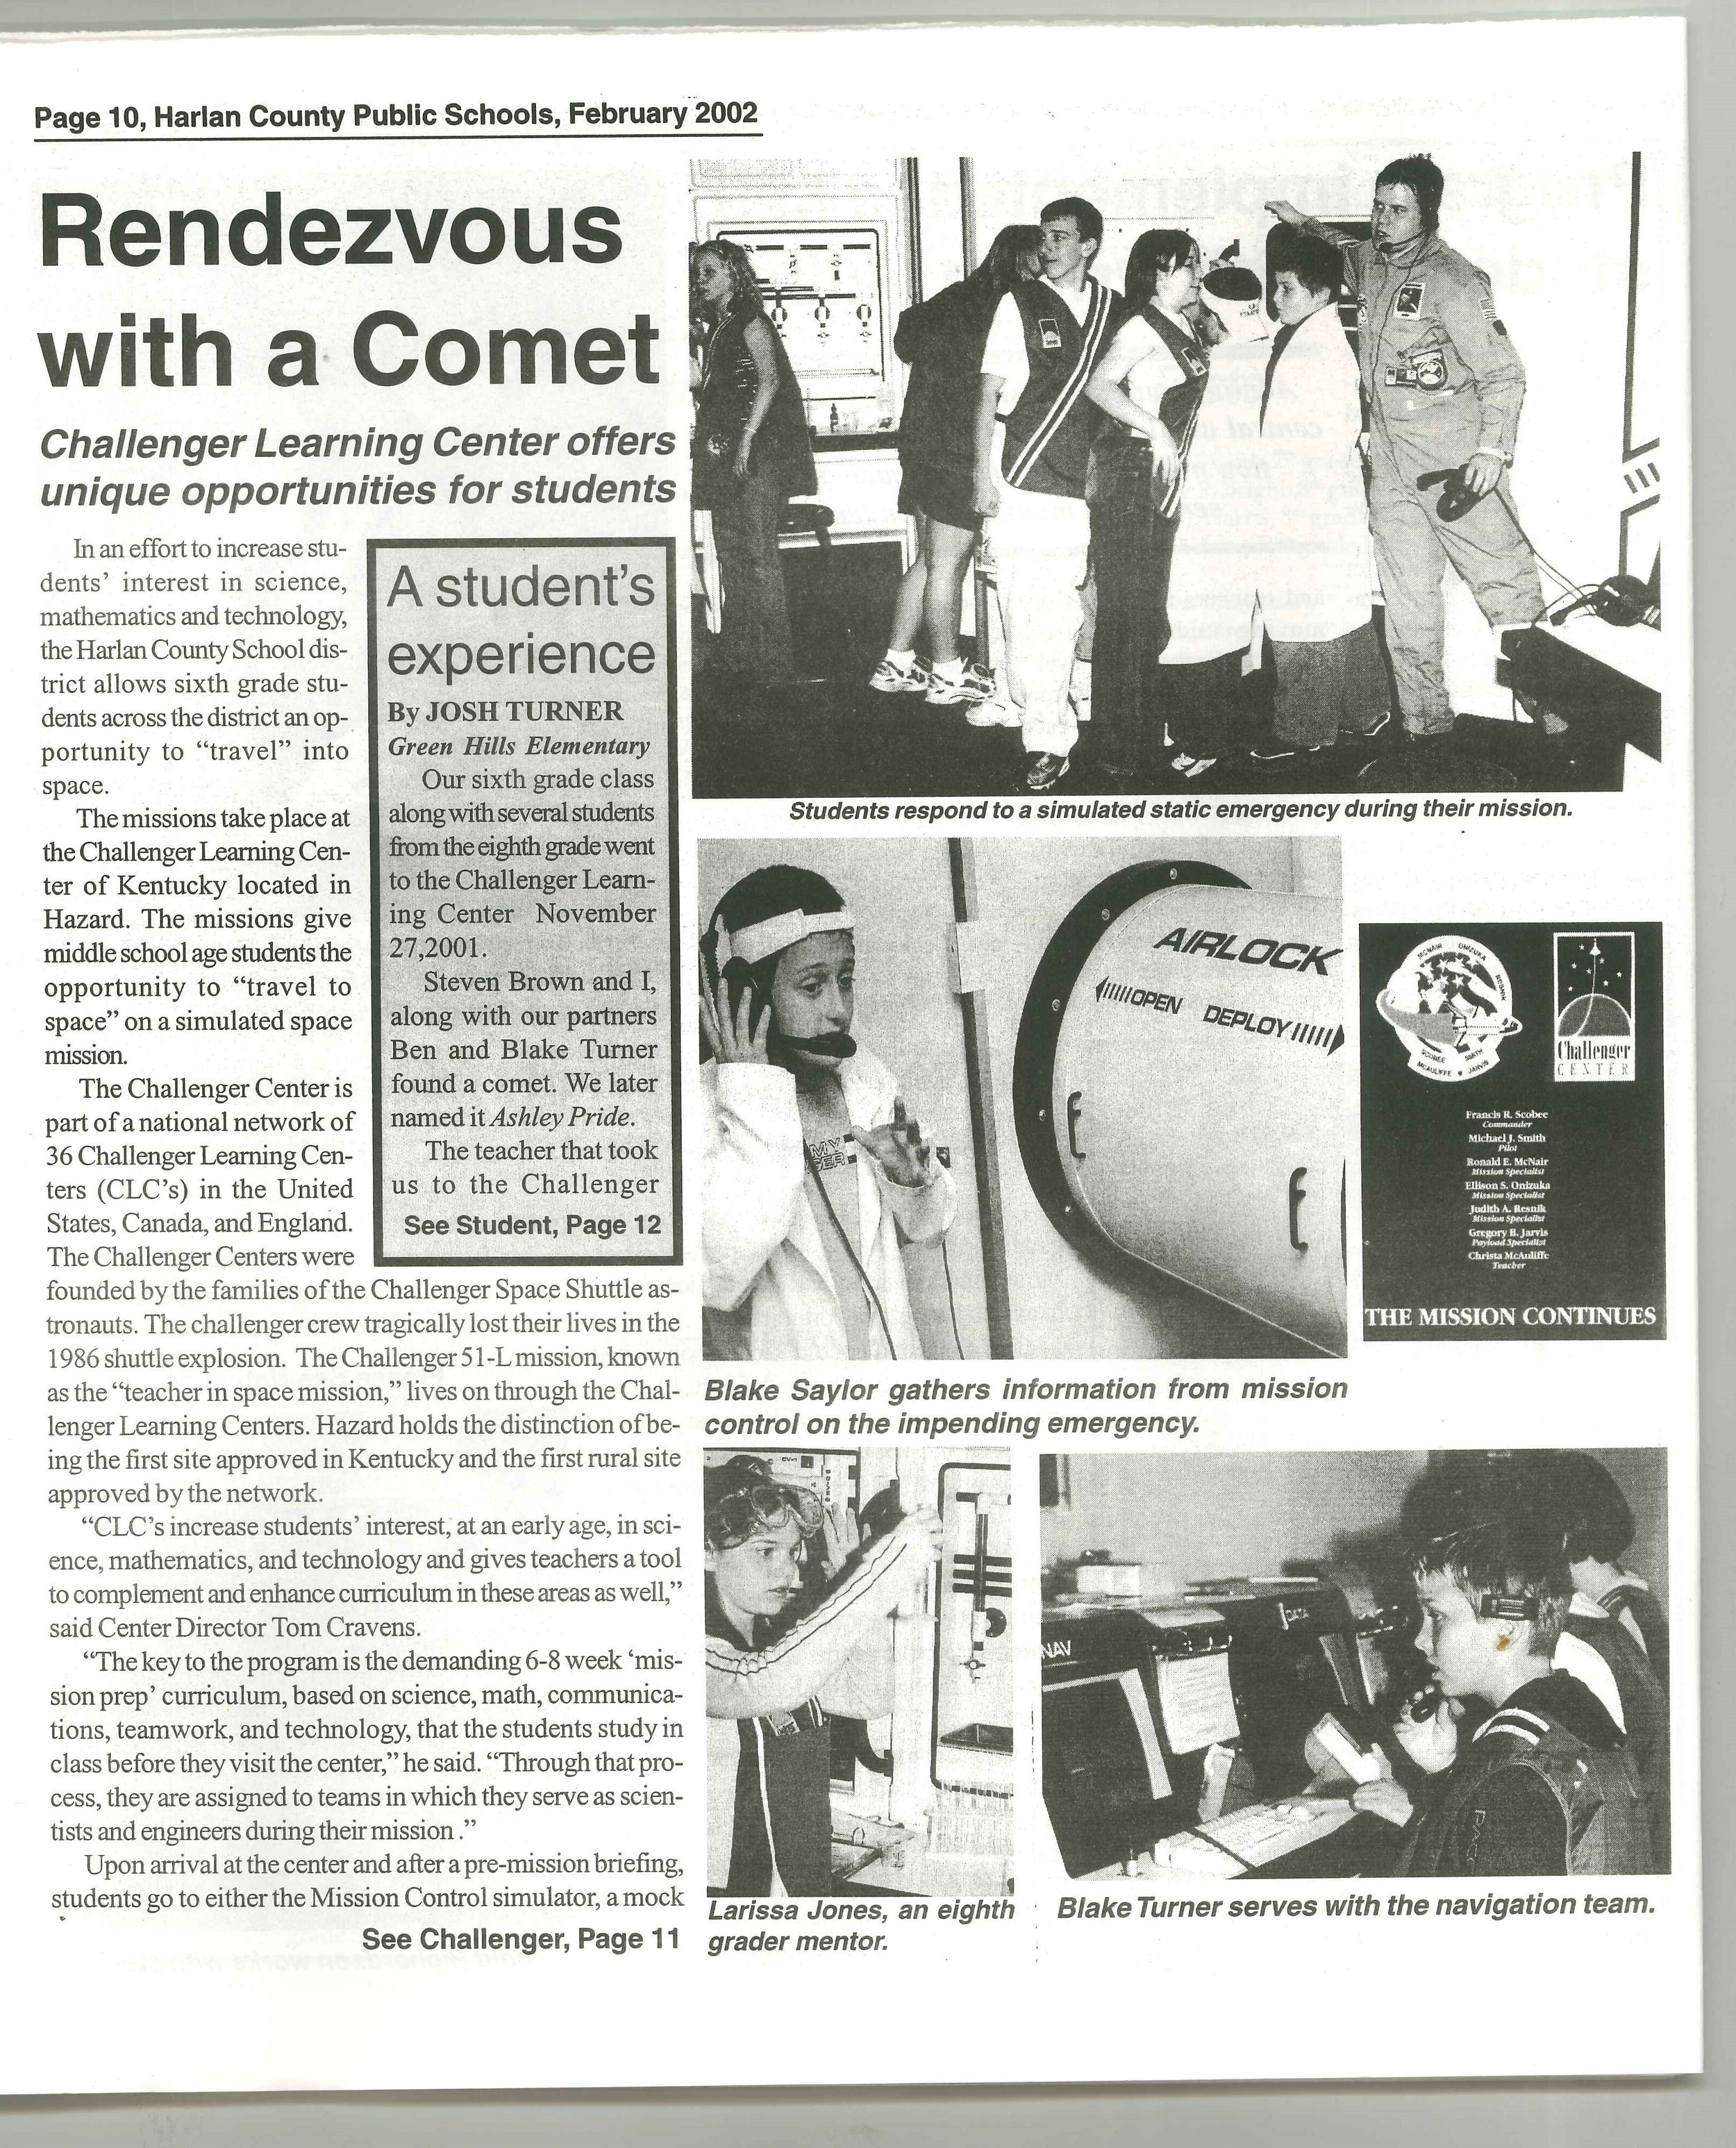 2002-02 Harlan County Public Schools District Report Card 2000-2001Rendezvous with a Comet p.10.jpg